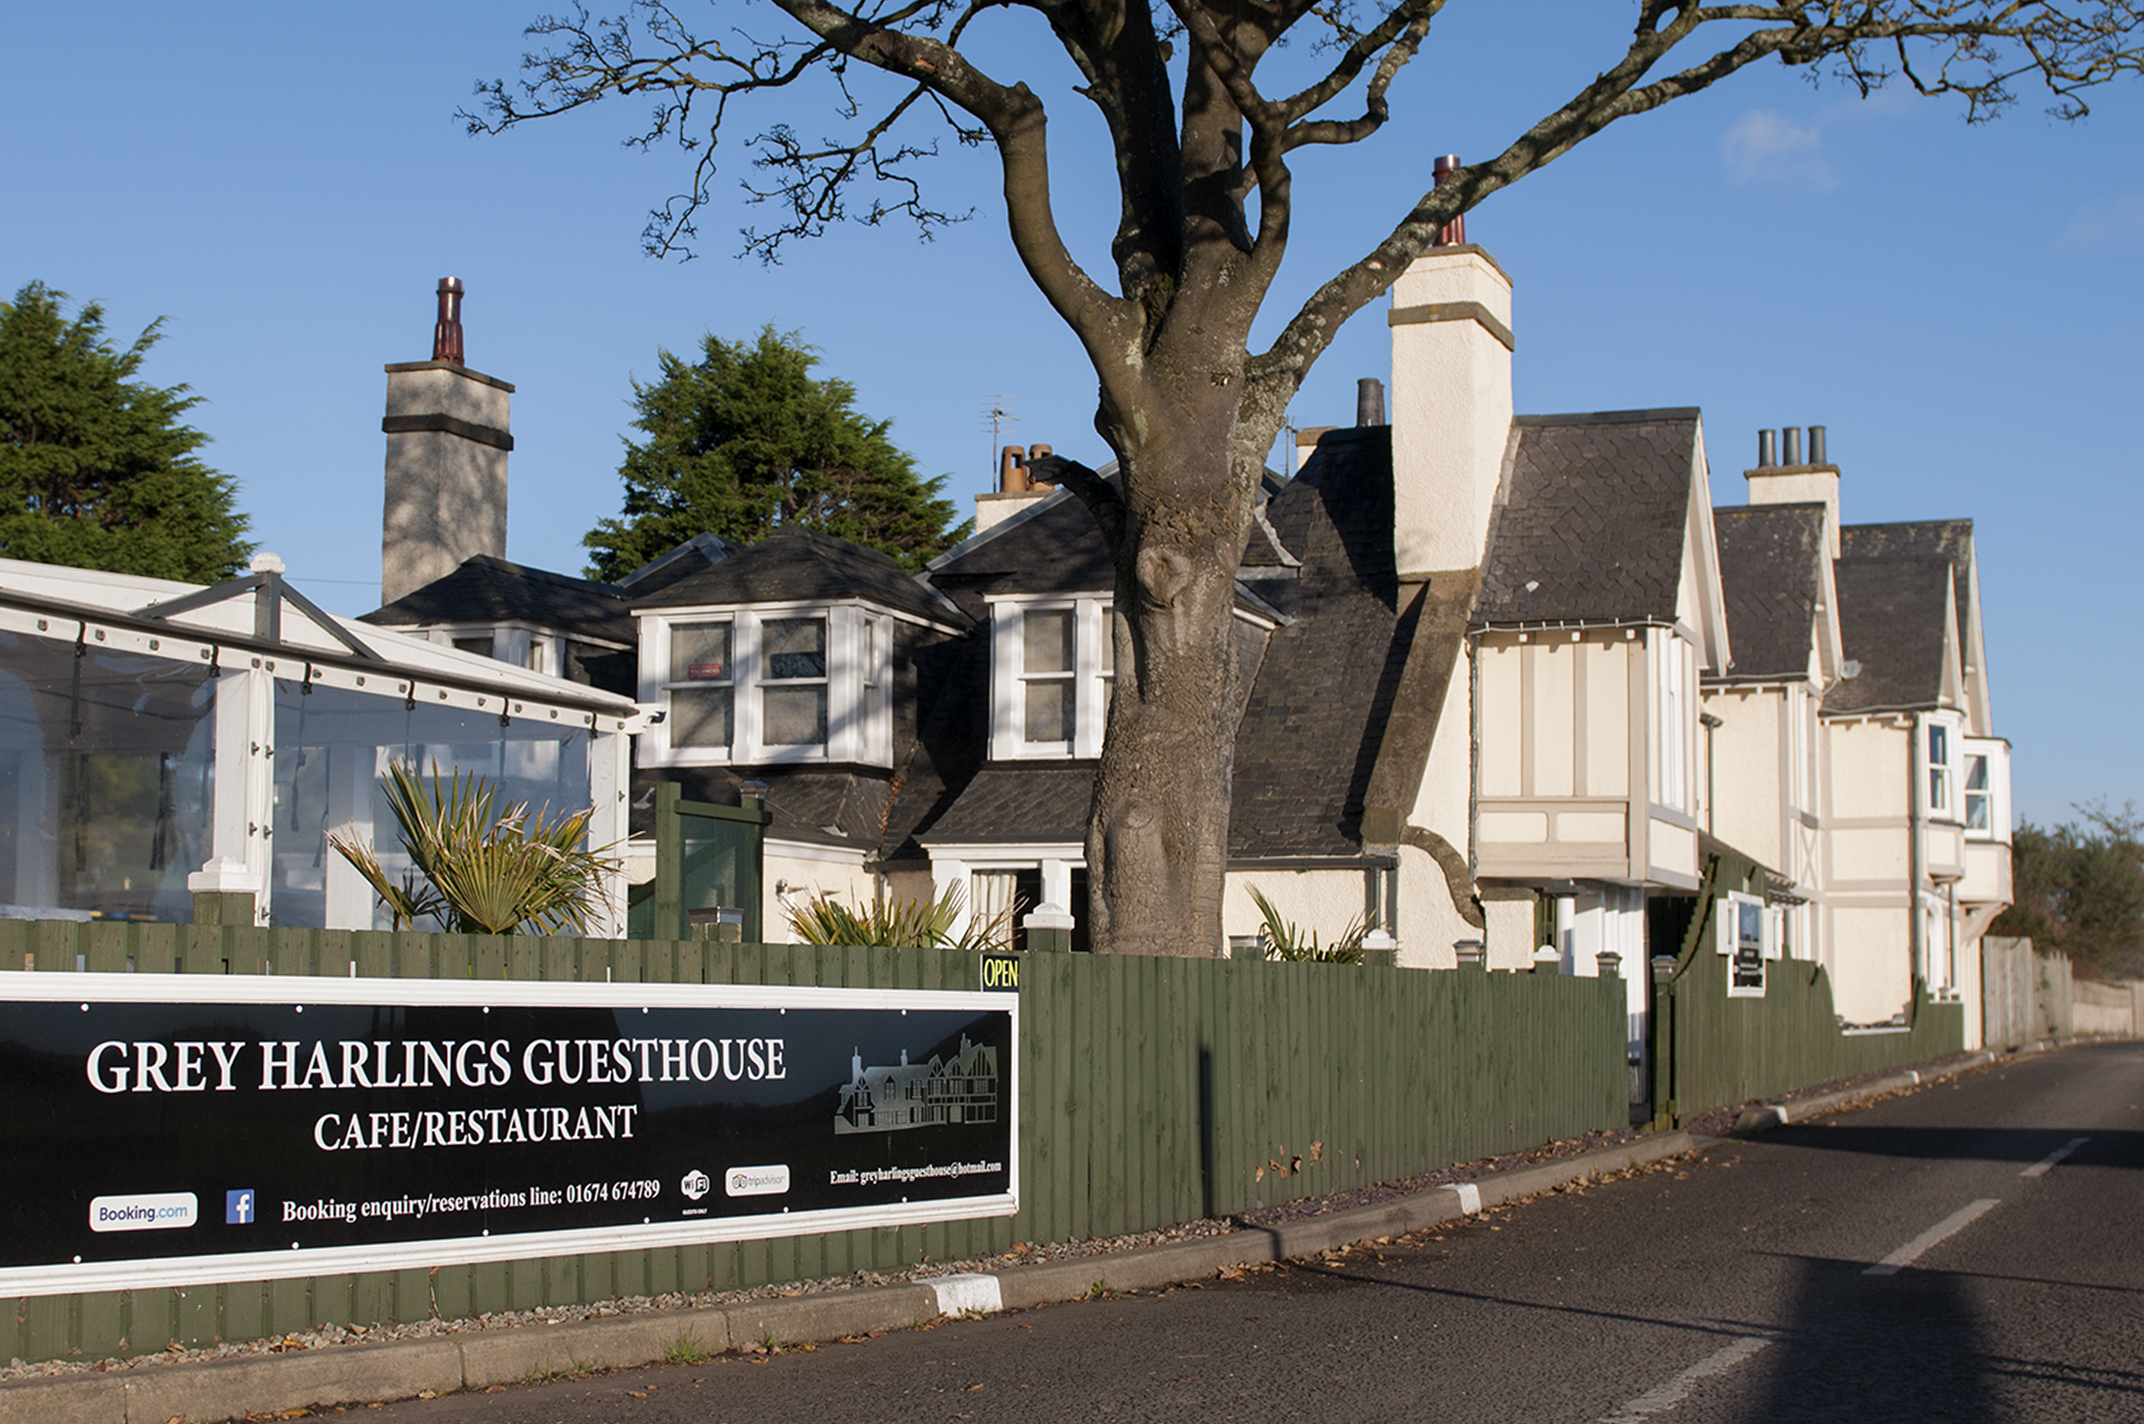 Grey Harlings Guest House in Montrose.